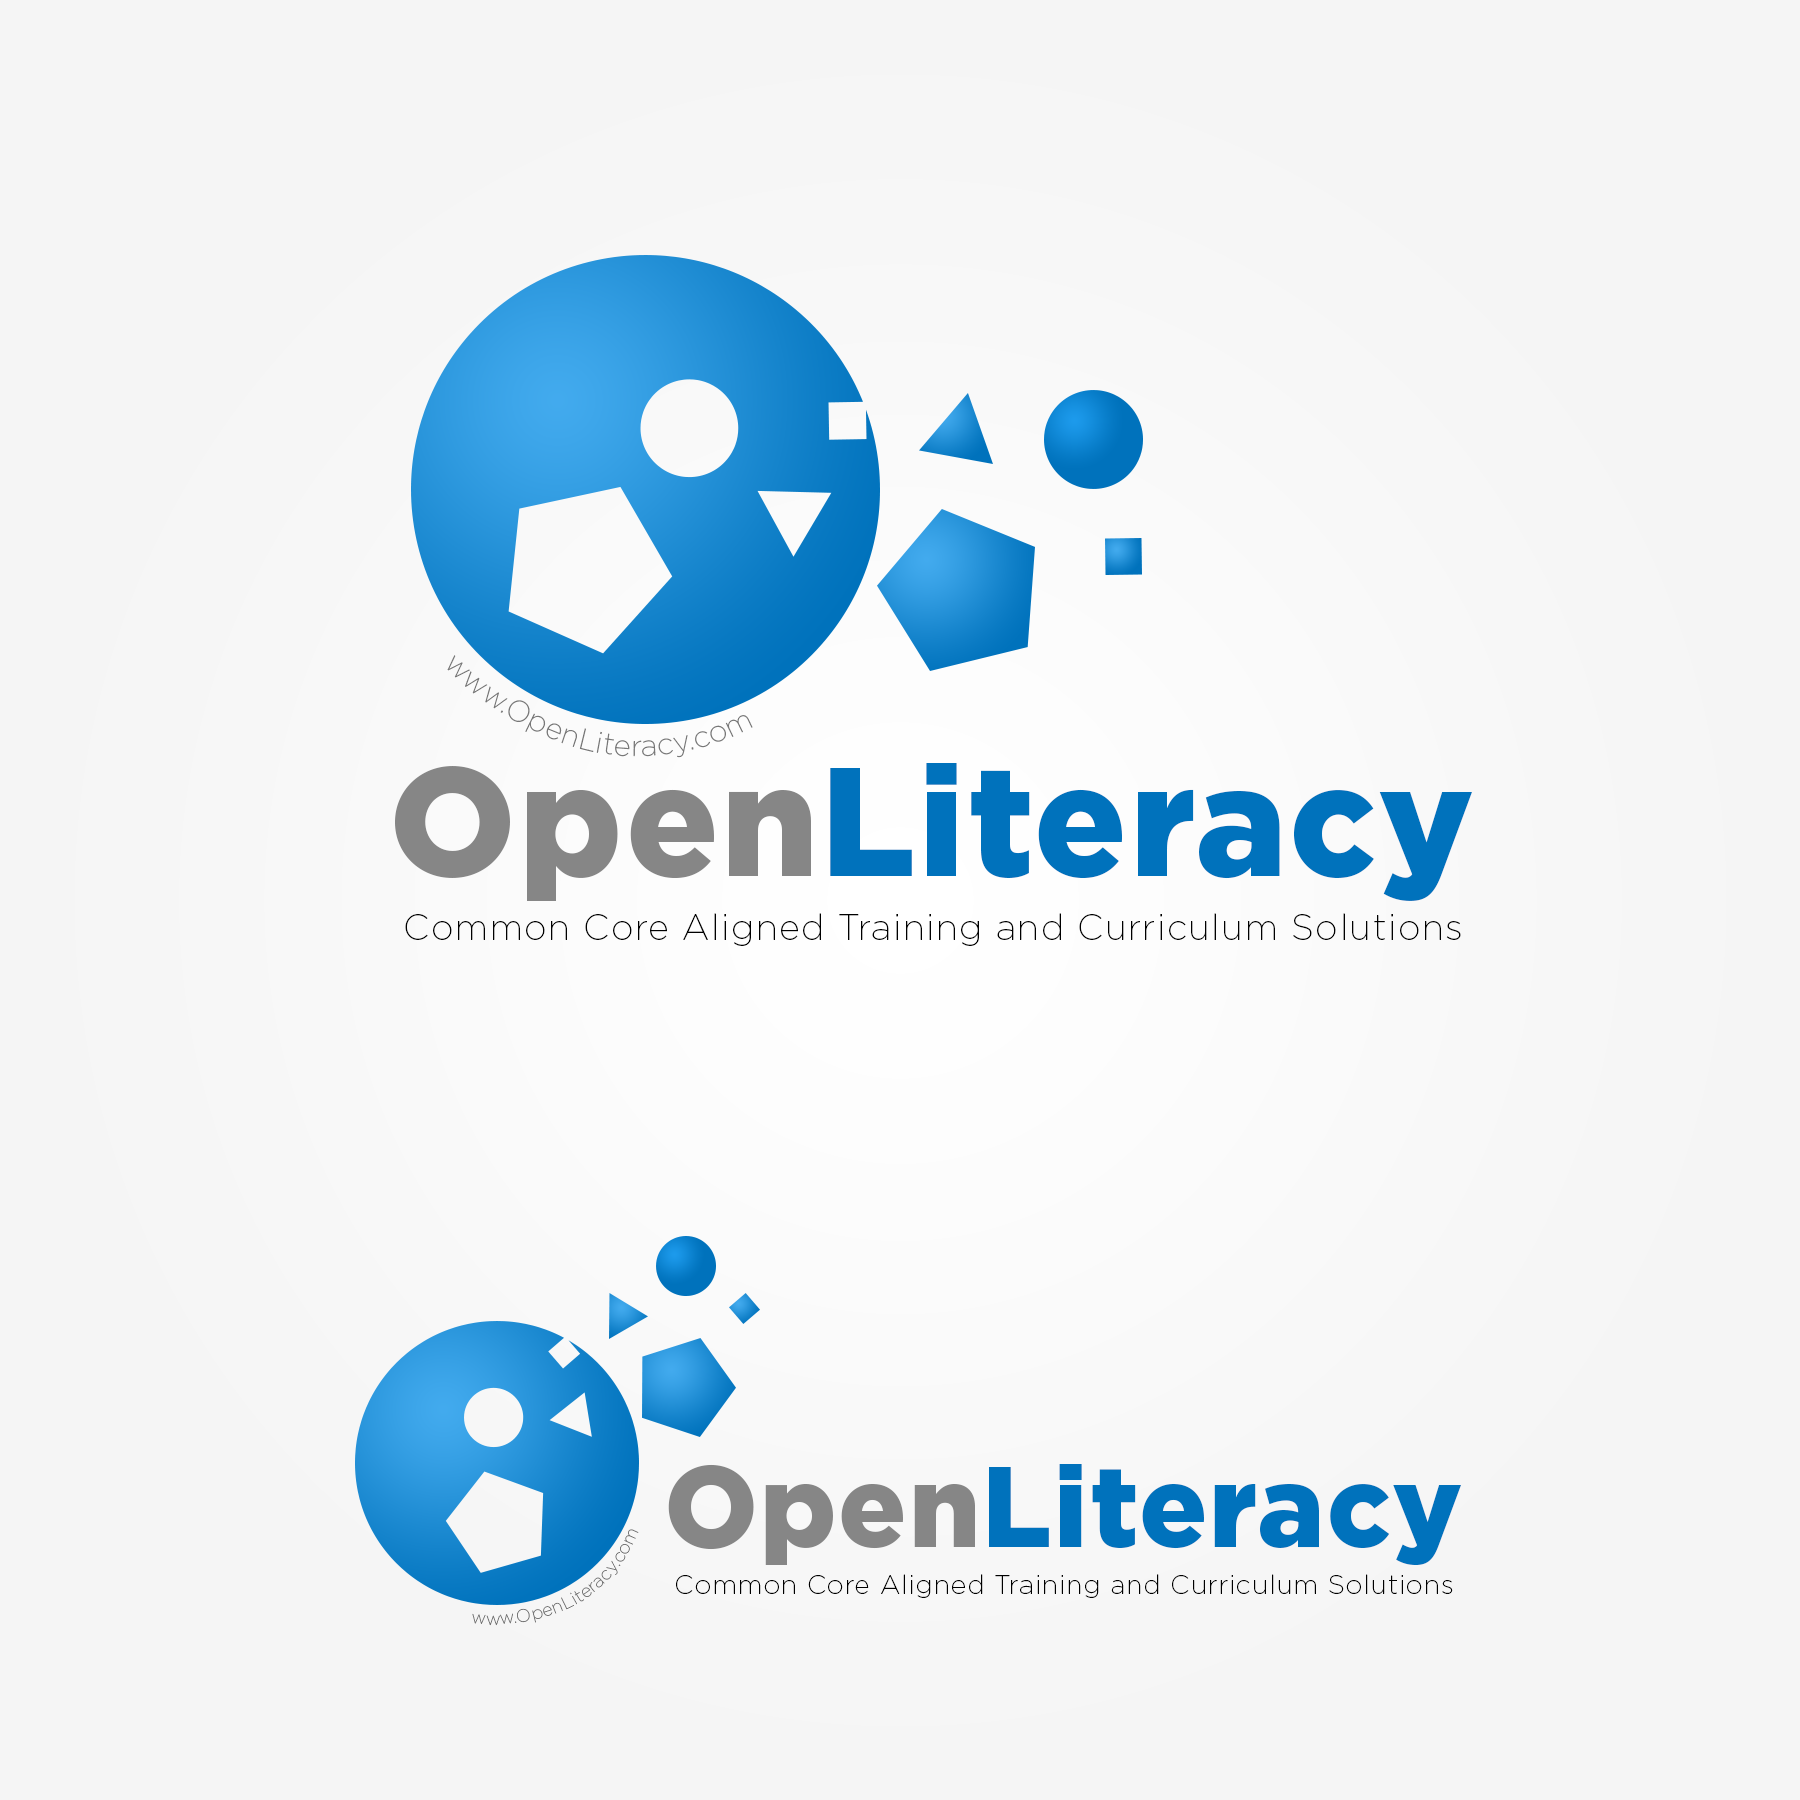 Logo Design by Lemuel Arvin Tanzo - Entry No. 75 in the Logo Design Contest Inspiring Logo Design for OpenLiteracy.